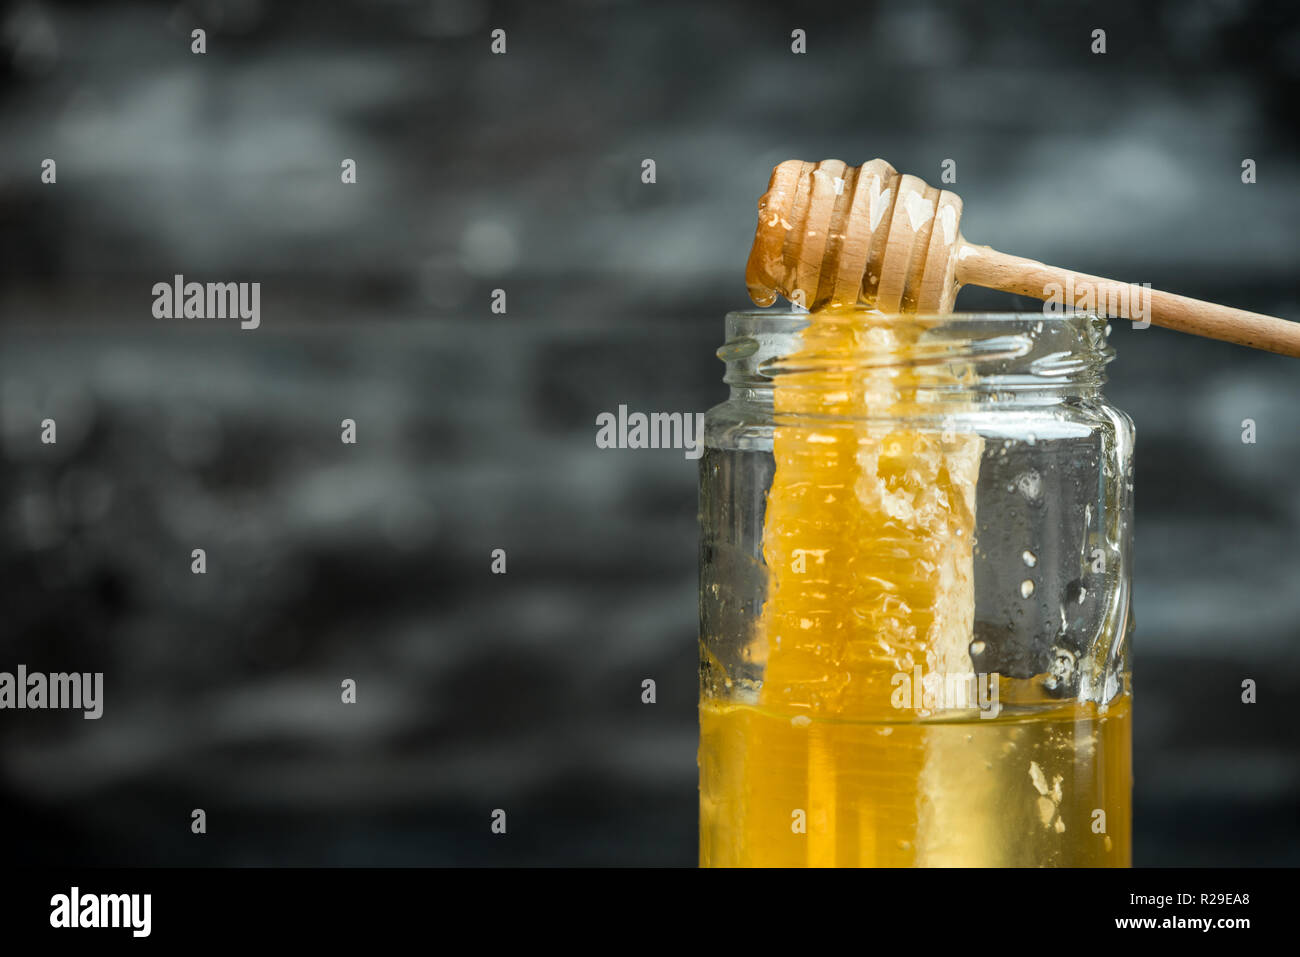 natural, healthy ingredient - a jar of golden honey on a dark background - Stock Image